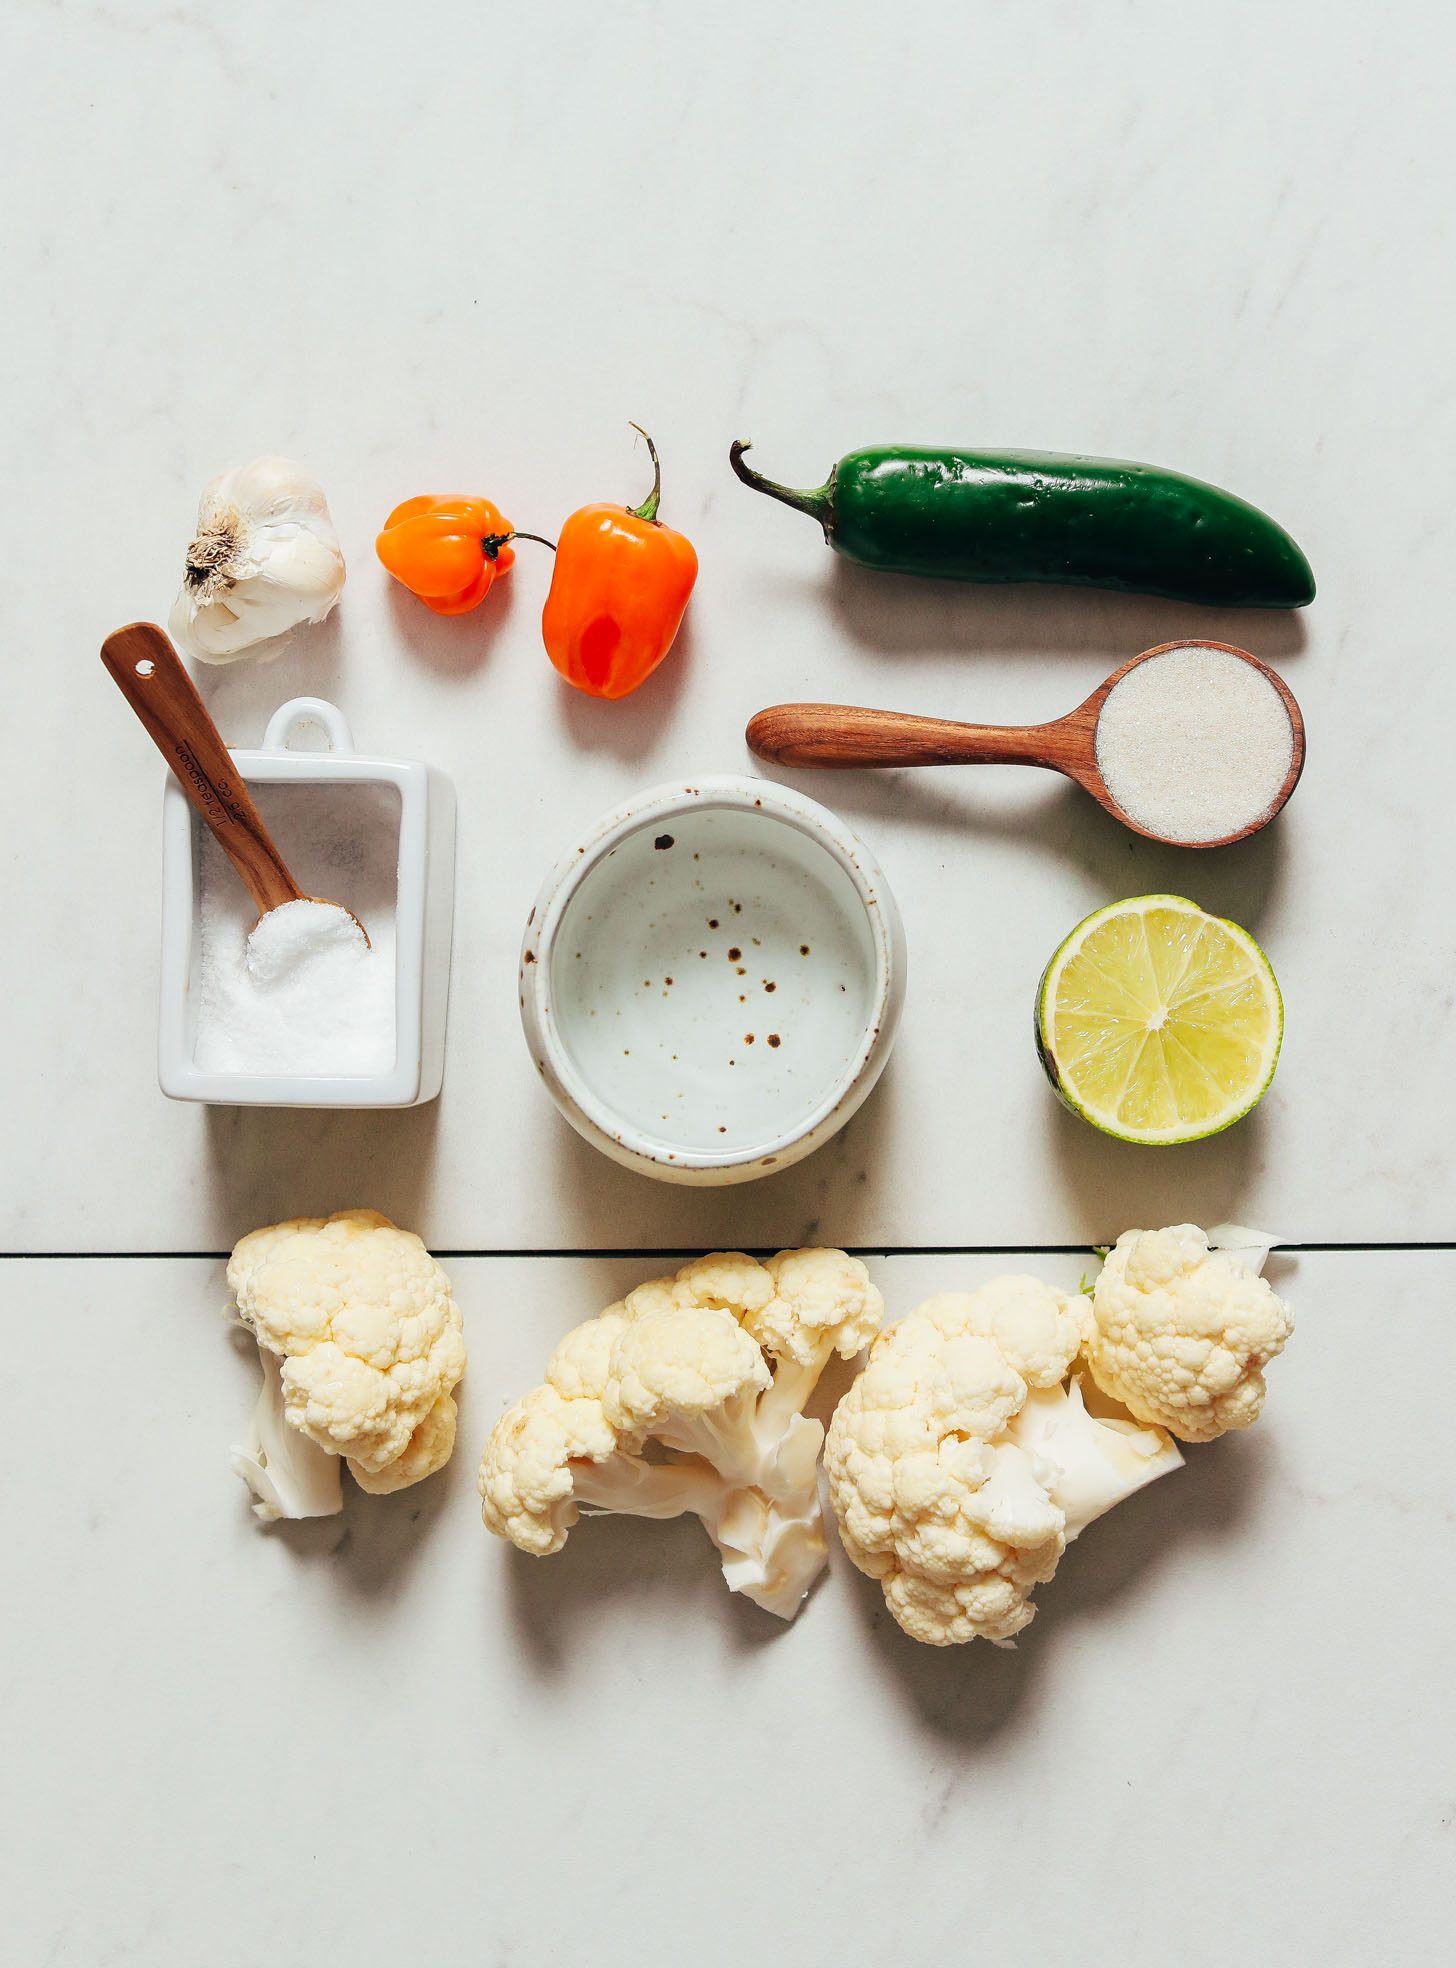 Cauliflower, habanero, jalapeno, lime, and other ingredients for making our easy Escabeche recipe